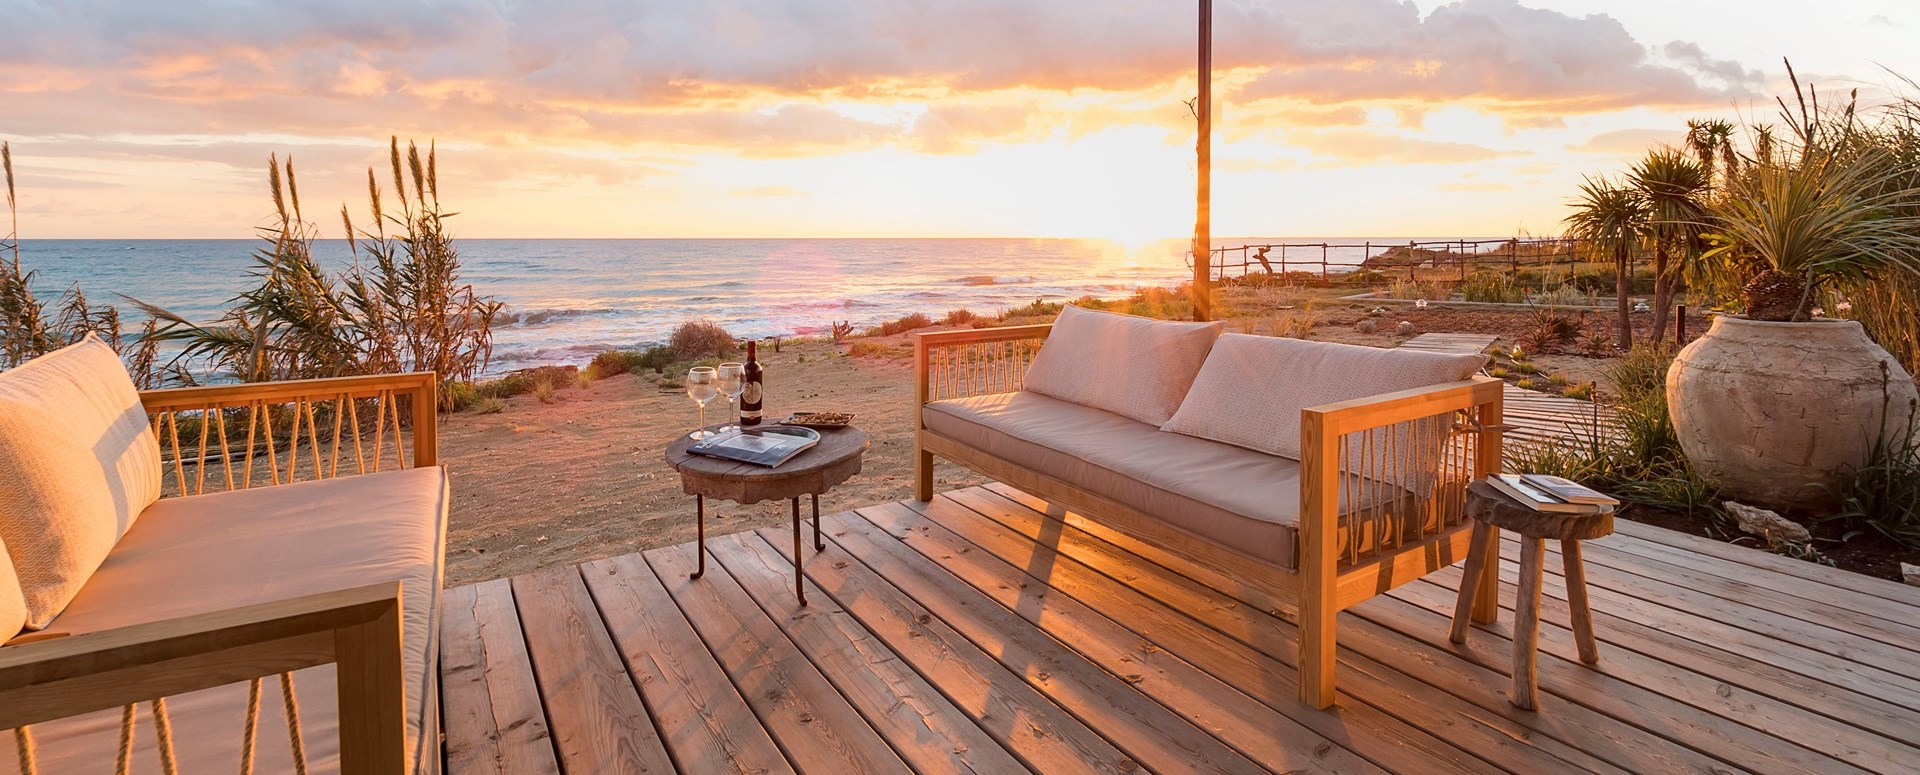 romantic-villa-holidays-for-two